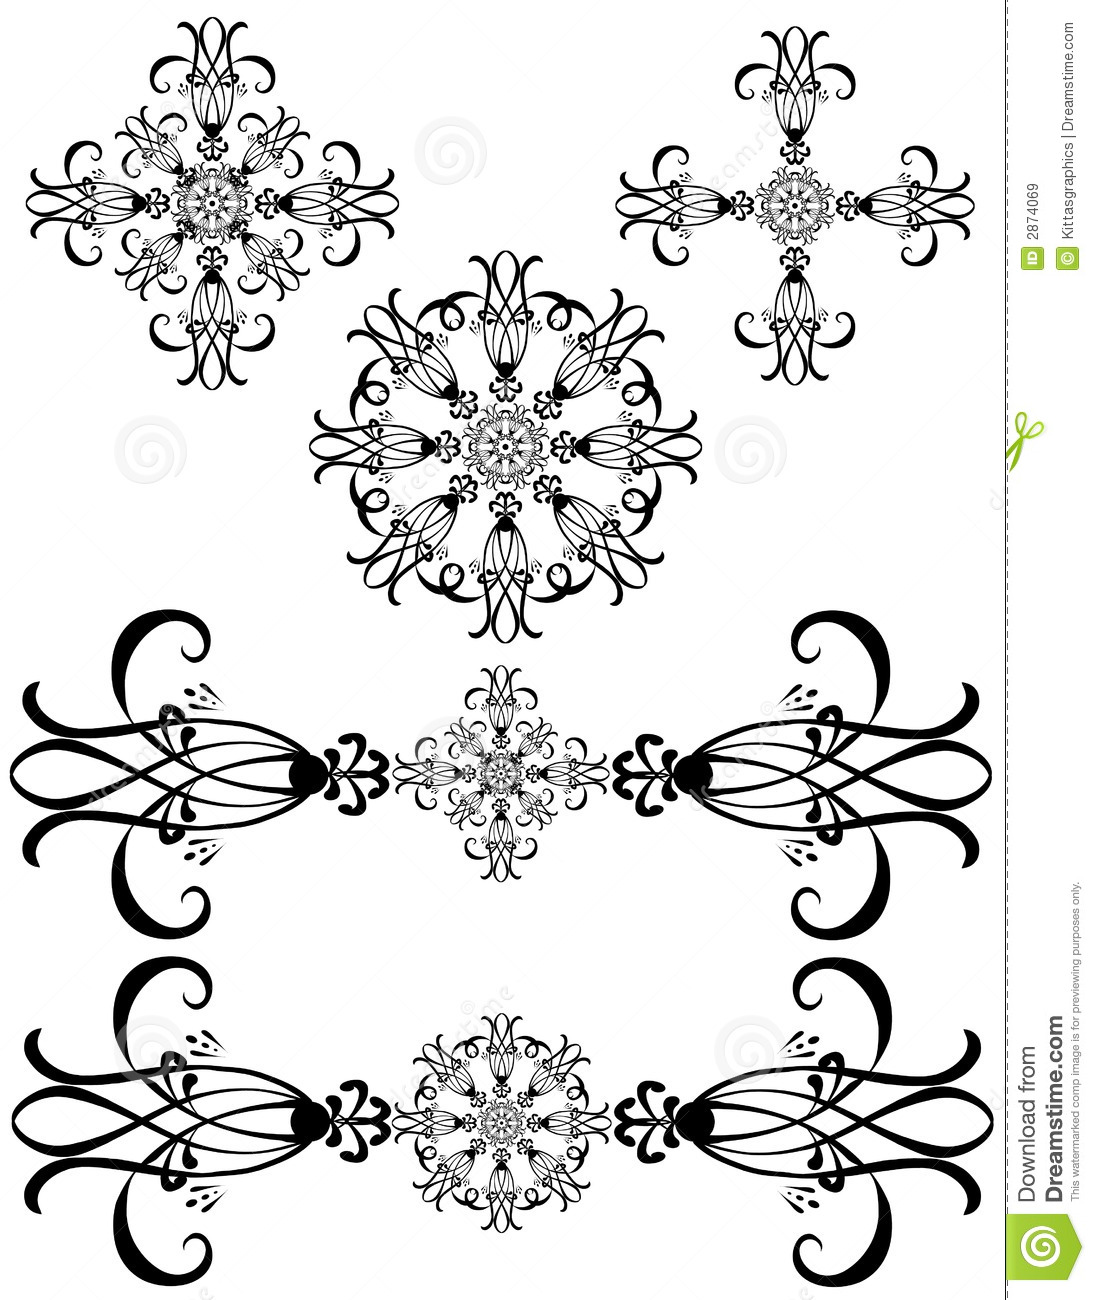 Fancy detailed decorations art stock vector image 2874069 for Drawing decoration ideas